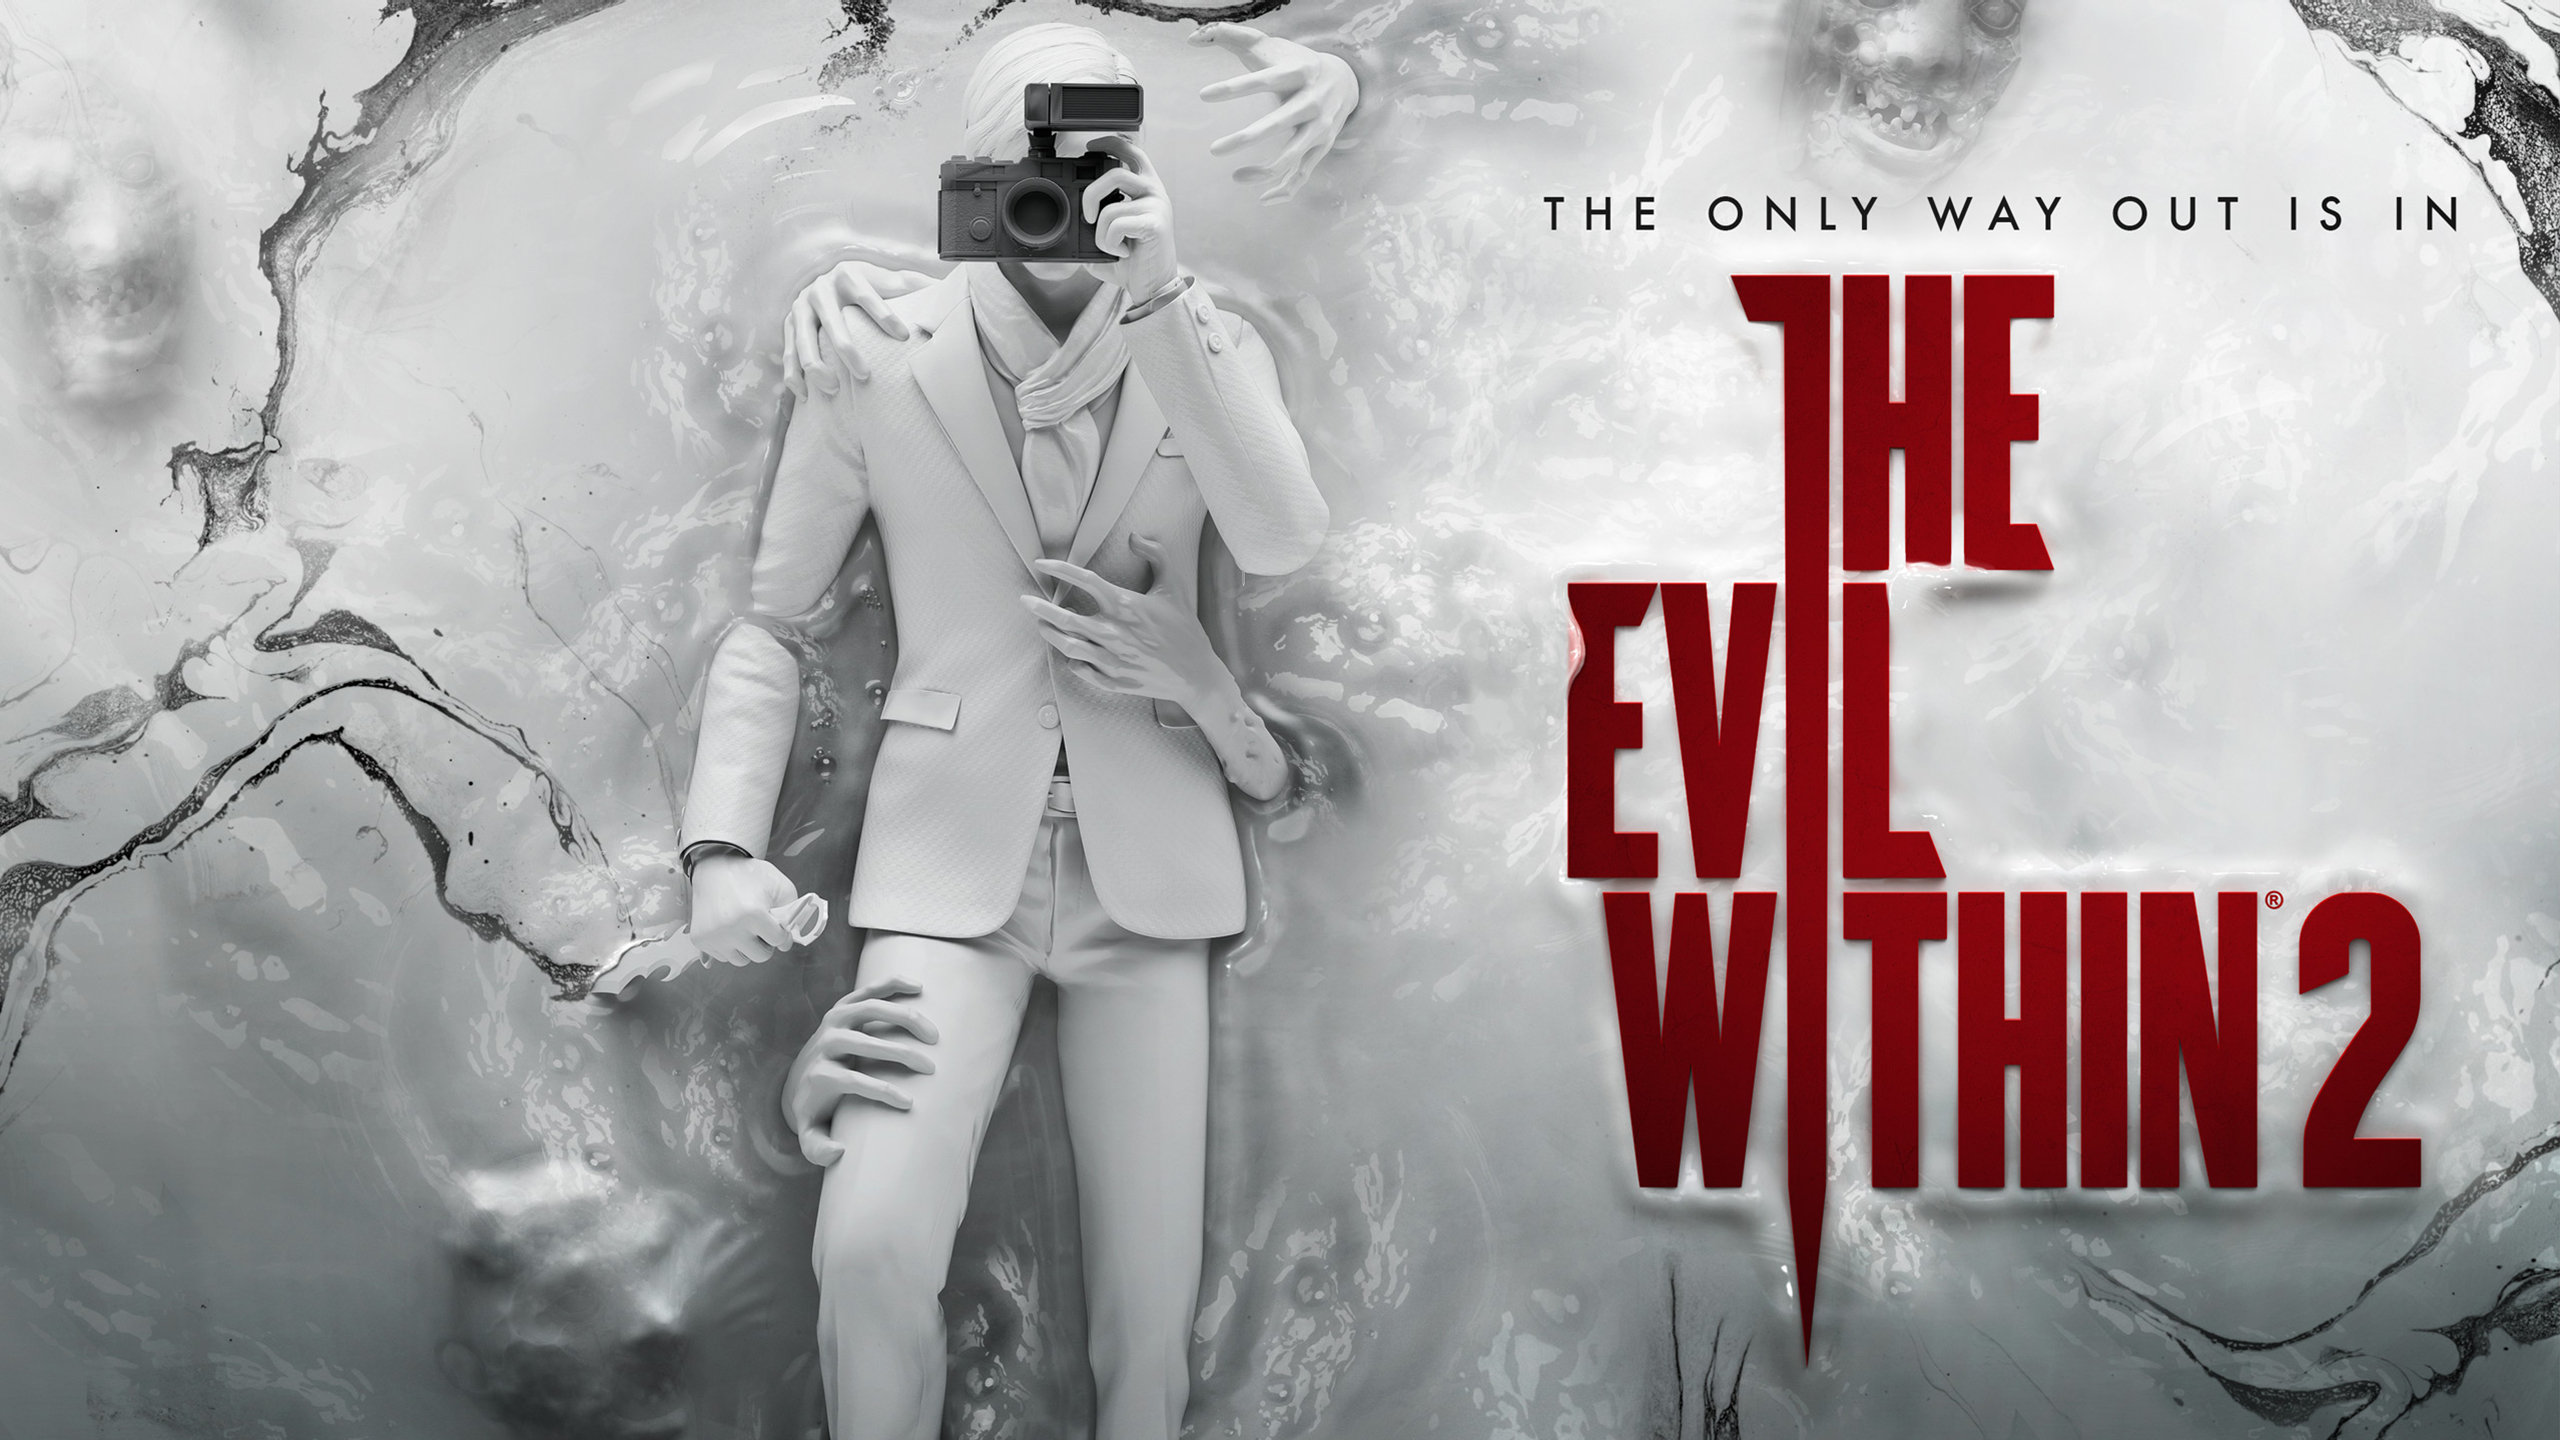 The Evil Within 2 Stefano Valentini901388082 - The Evil Within 2 Stefano Valentini - Within, Valentini, The, Stefano, God, Evil